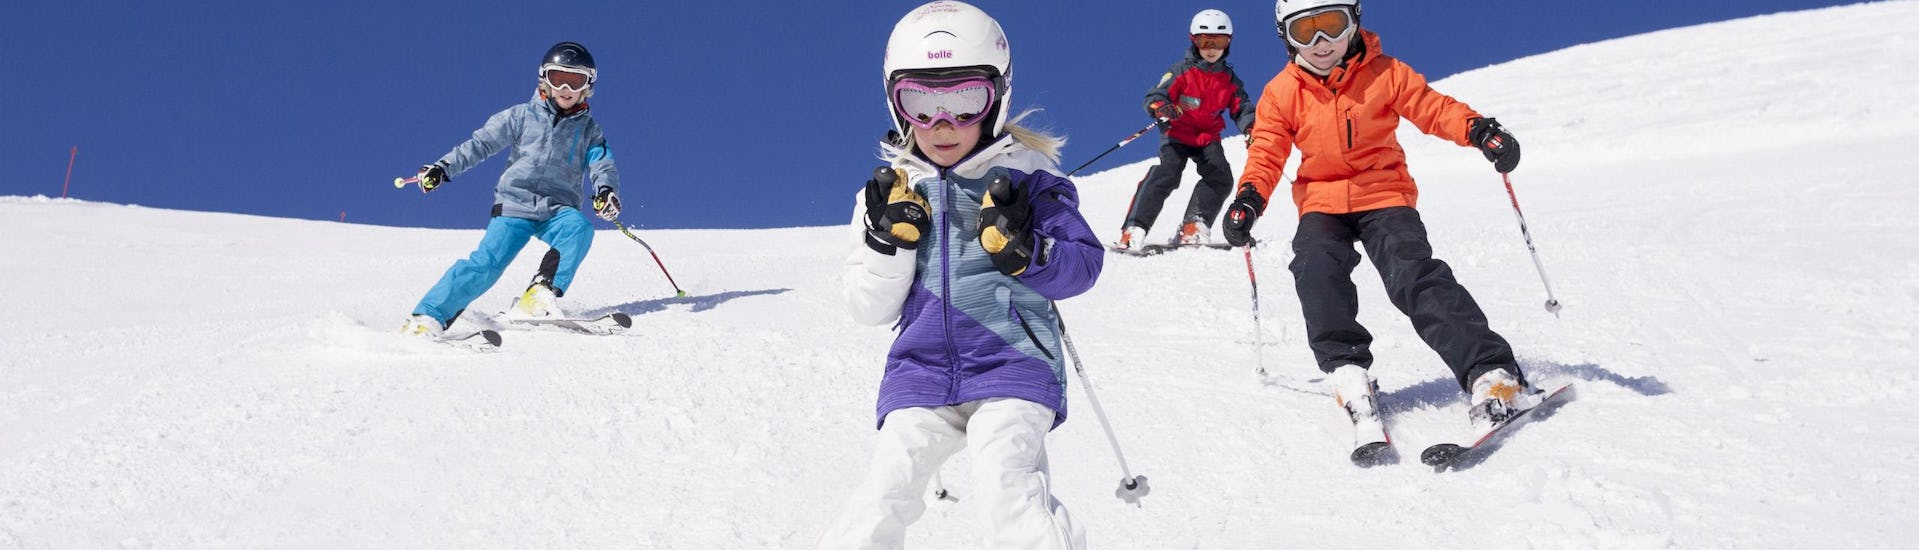 A group of children is enjoying their Kids Ski Lessons (4-12 years) - Half Day - All Levels with the ski school Skischule Zugspitze Grainau in the ski resort of Garmisch-Classic.